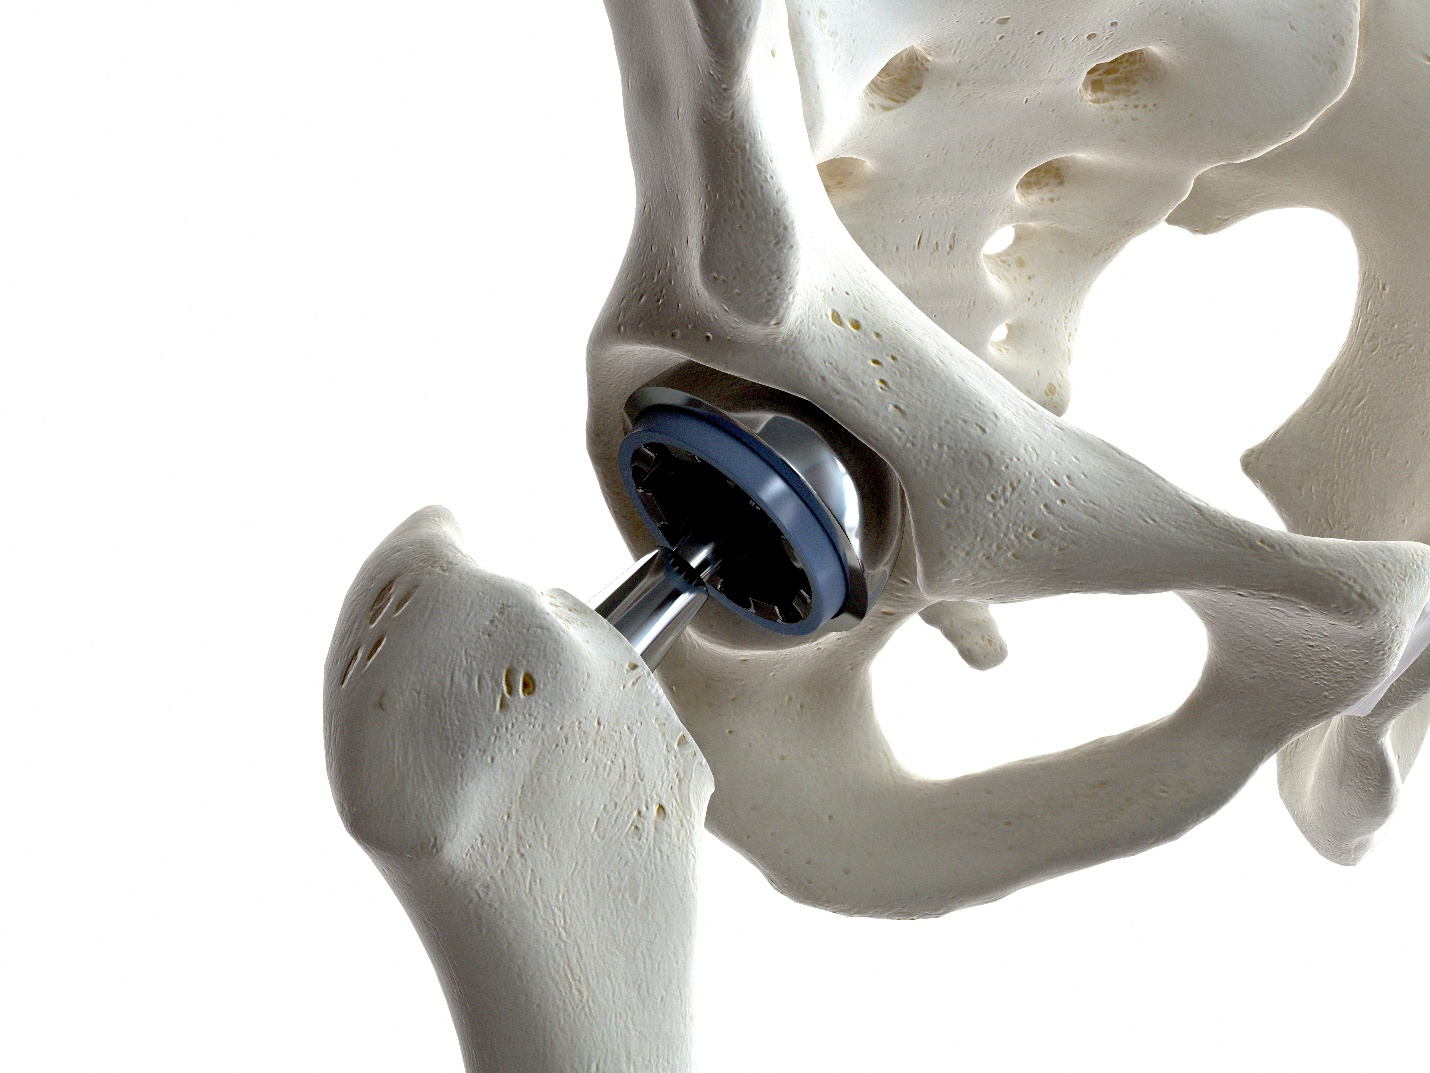 A 3D rendering of the Biomet metal-on-metal hip replacement device.